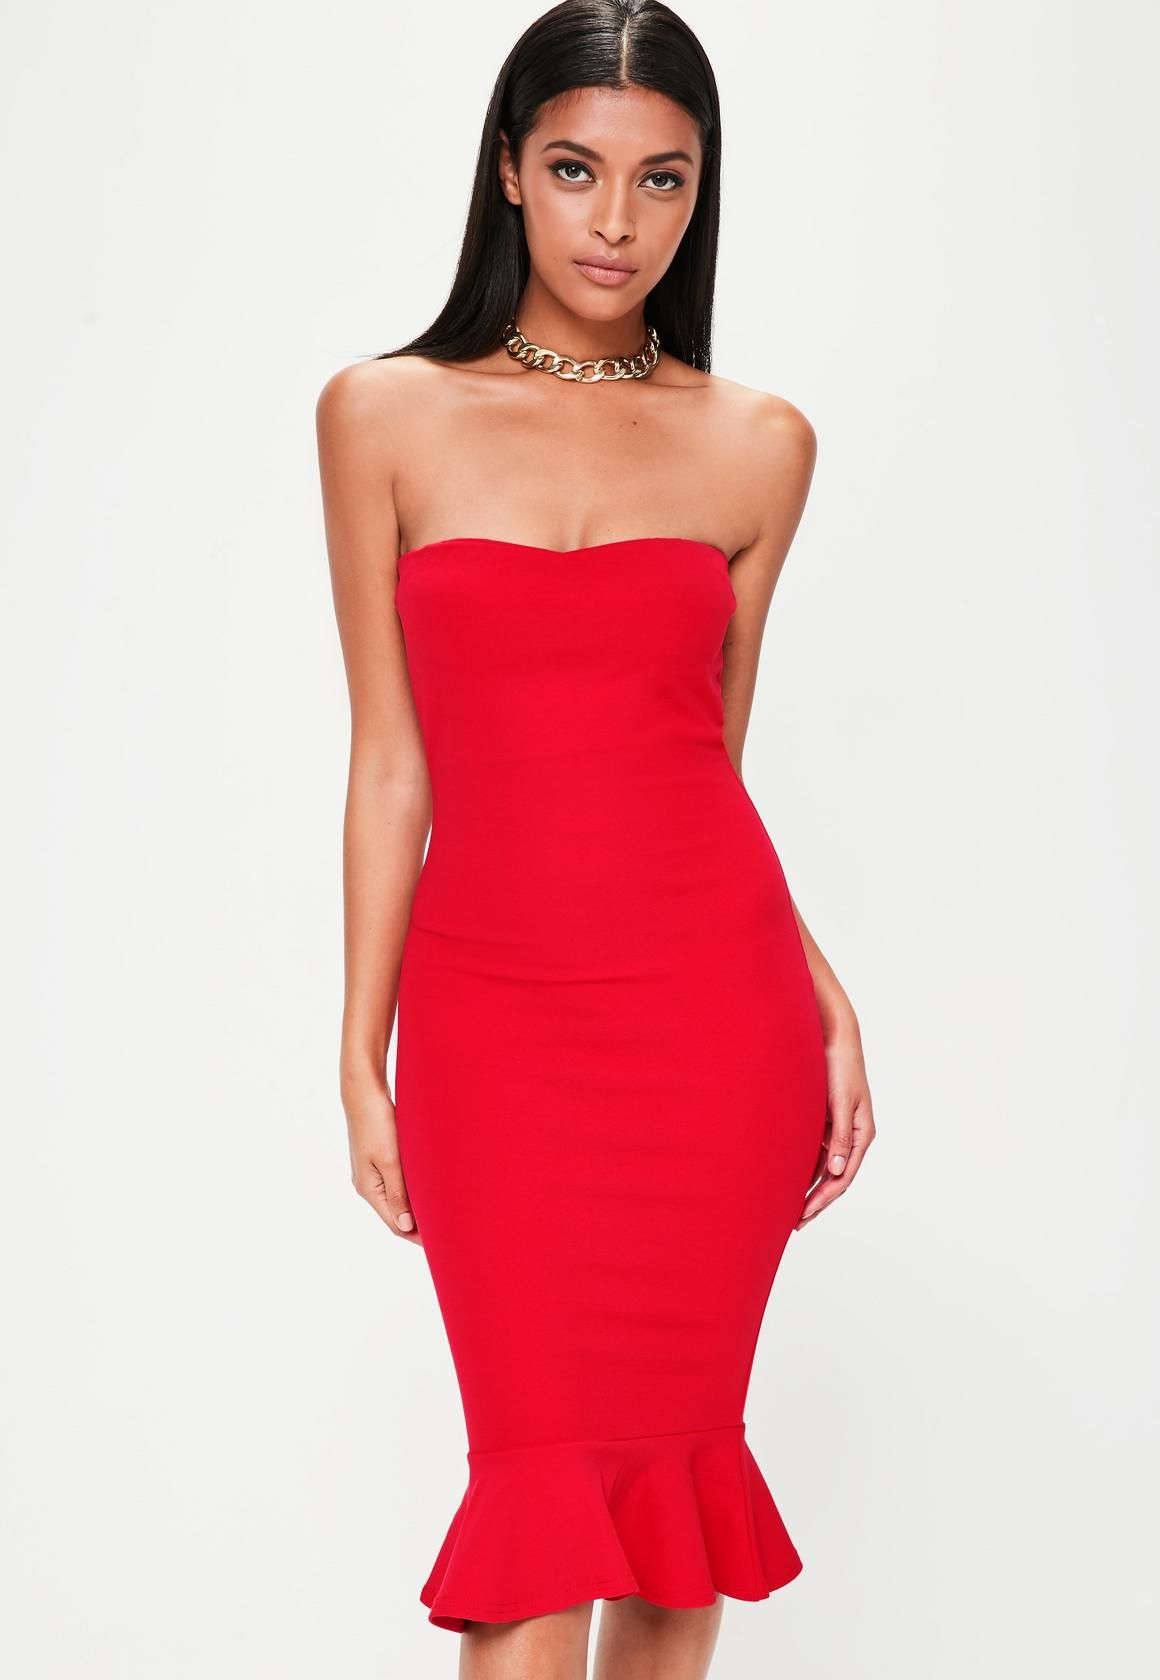 Red dress featuring a frilled hem line bandeau neckline and bodycon